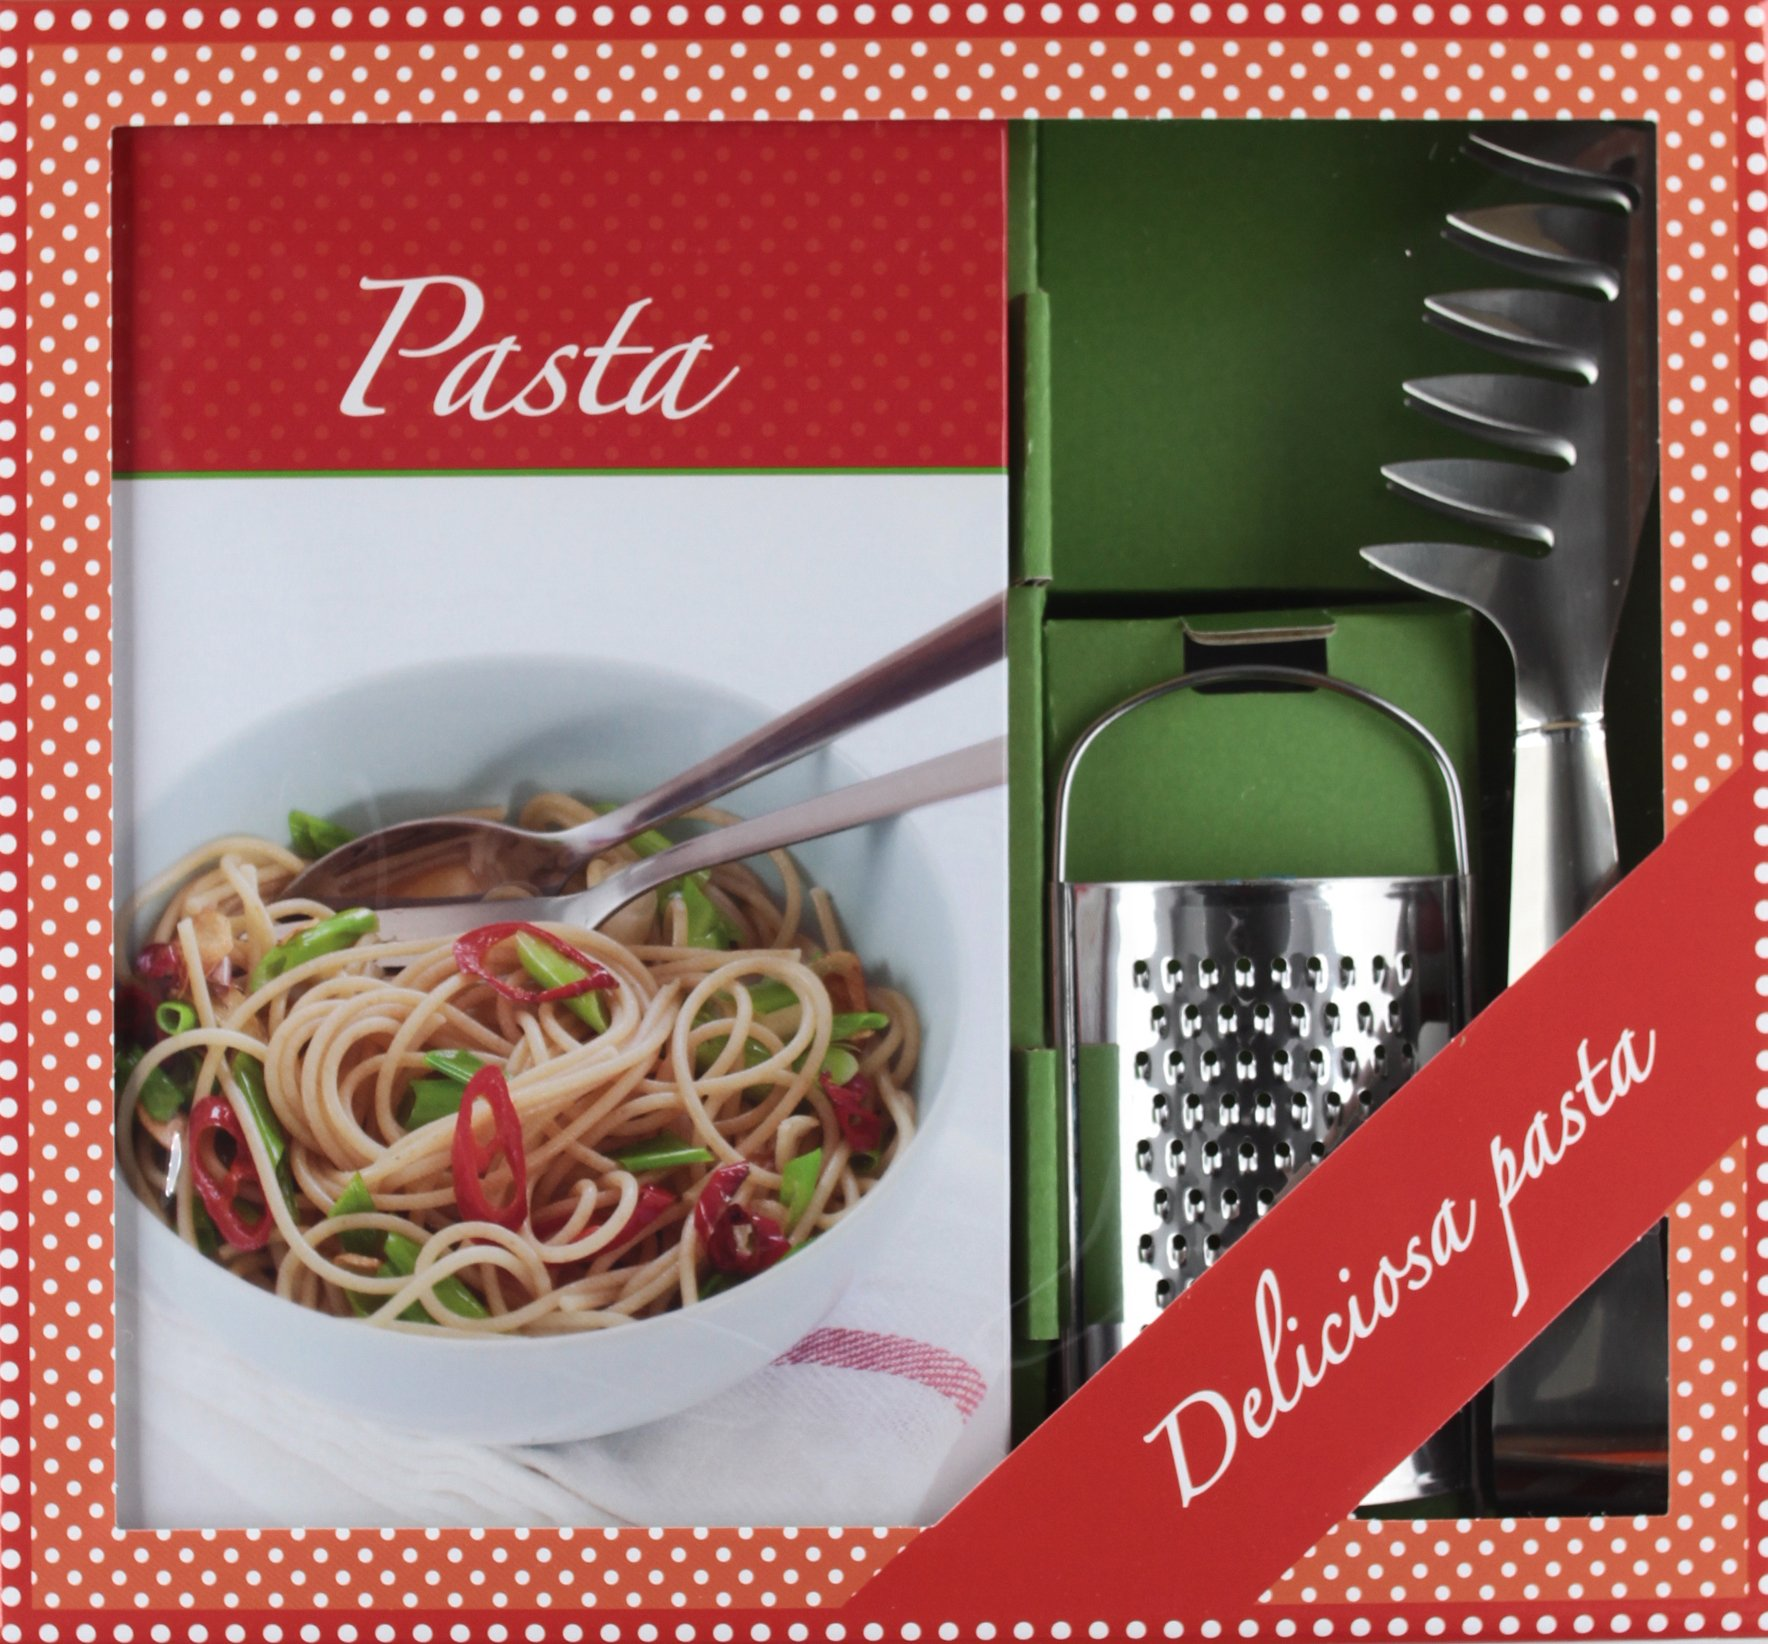 PASTA.(ESTUCHE): VARIOS: 9783625002208: Amazon.com: Books